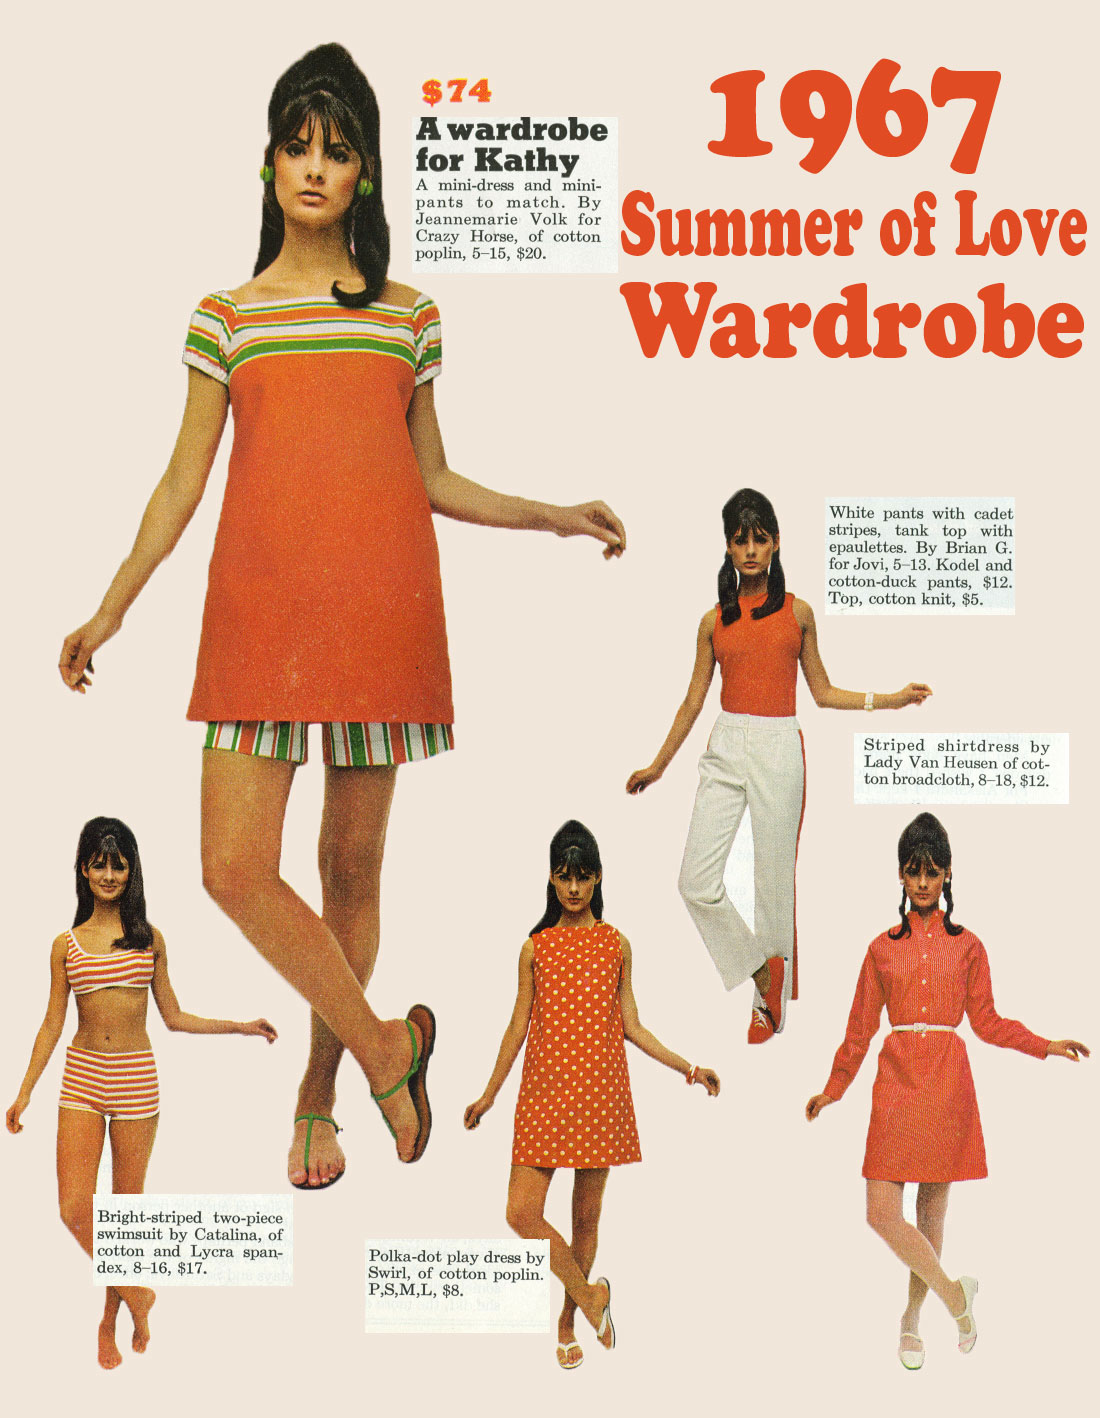 1967 Summer Of Love Wardrobe For 74 Orange Glow